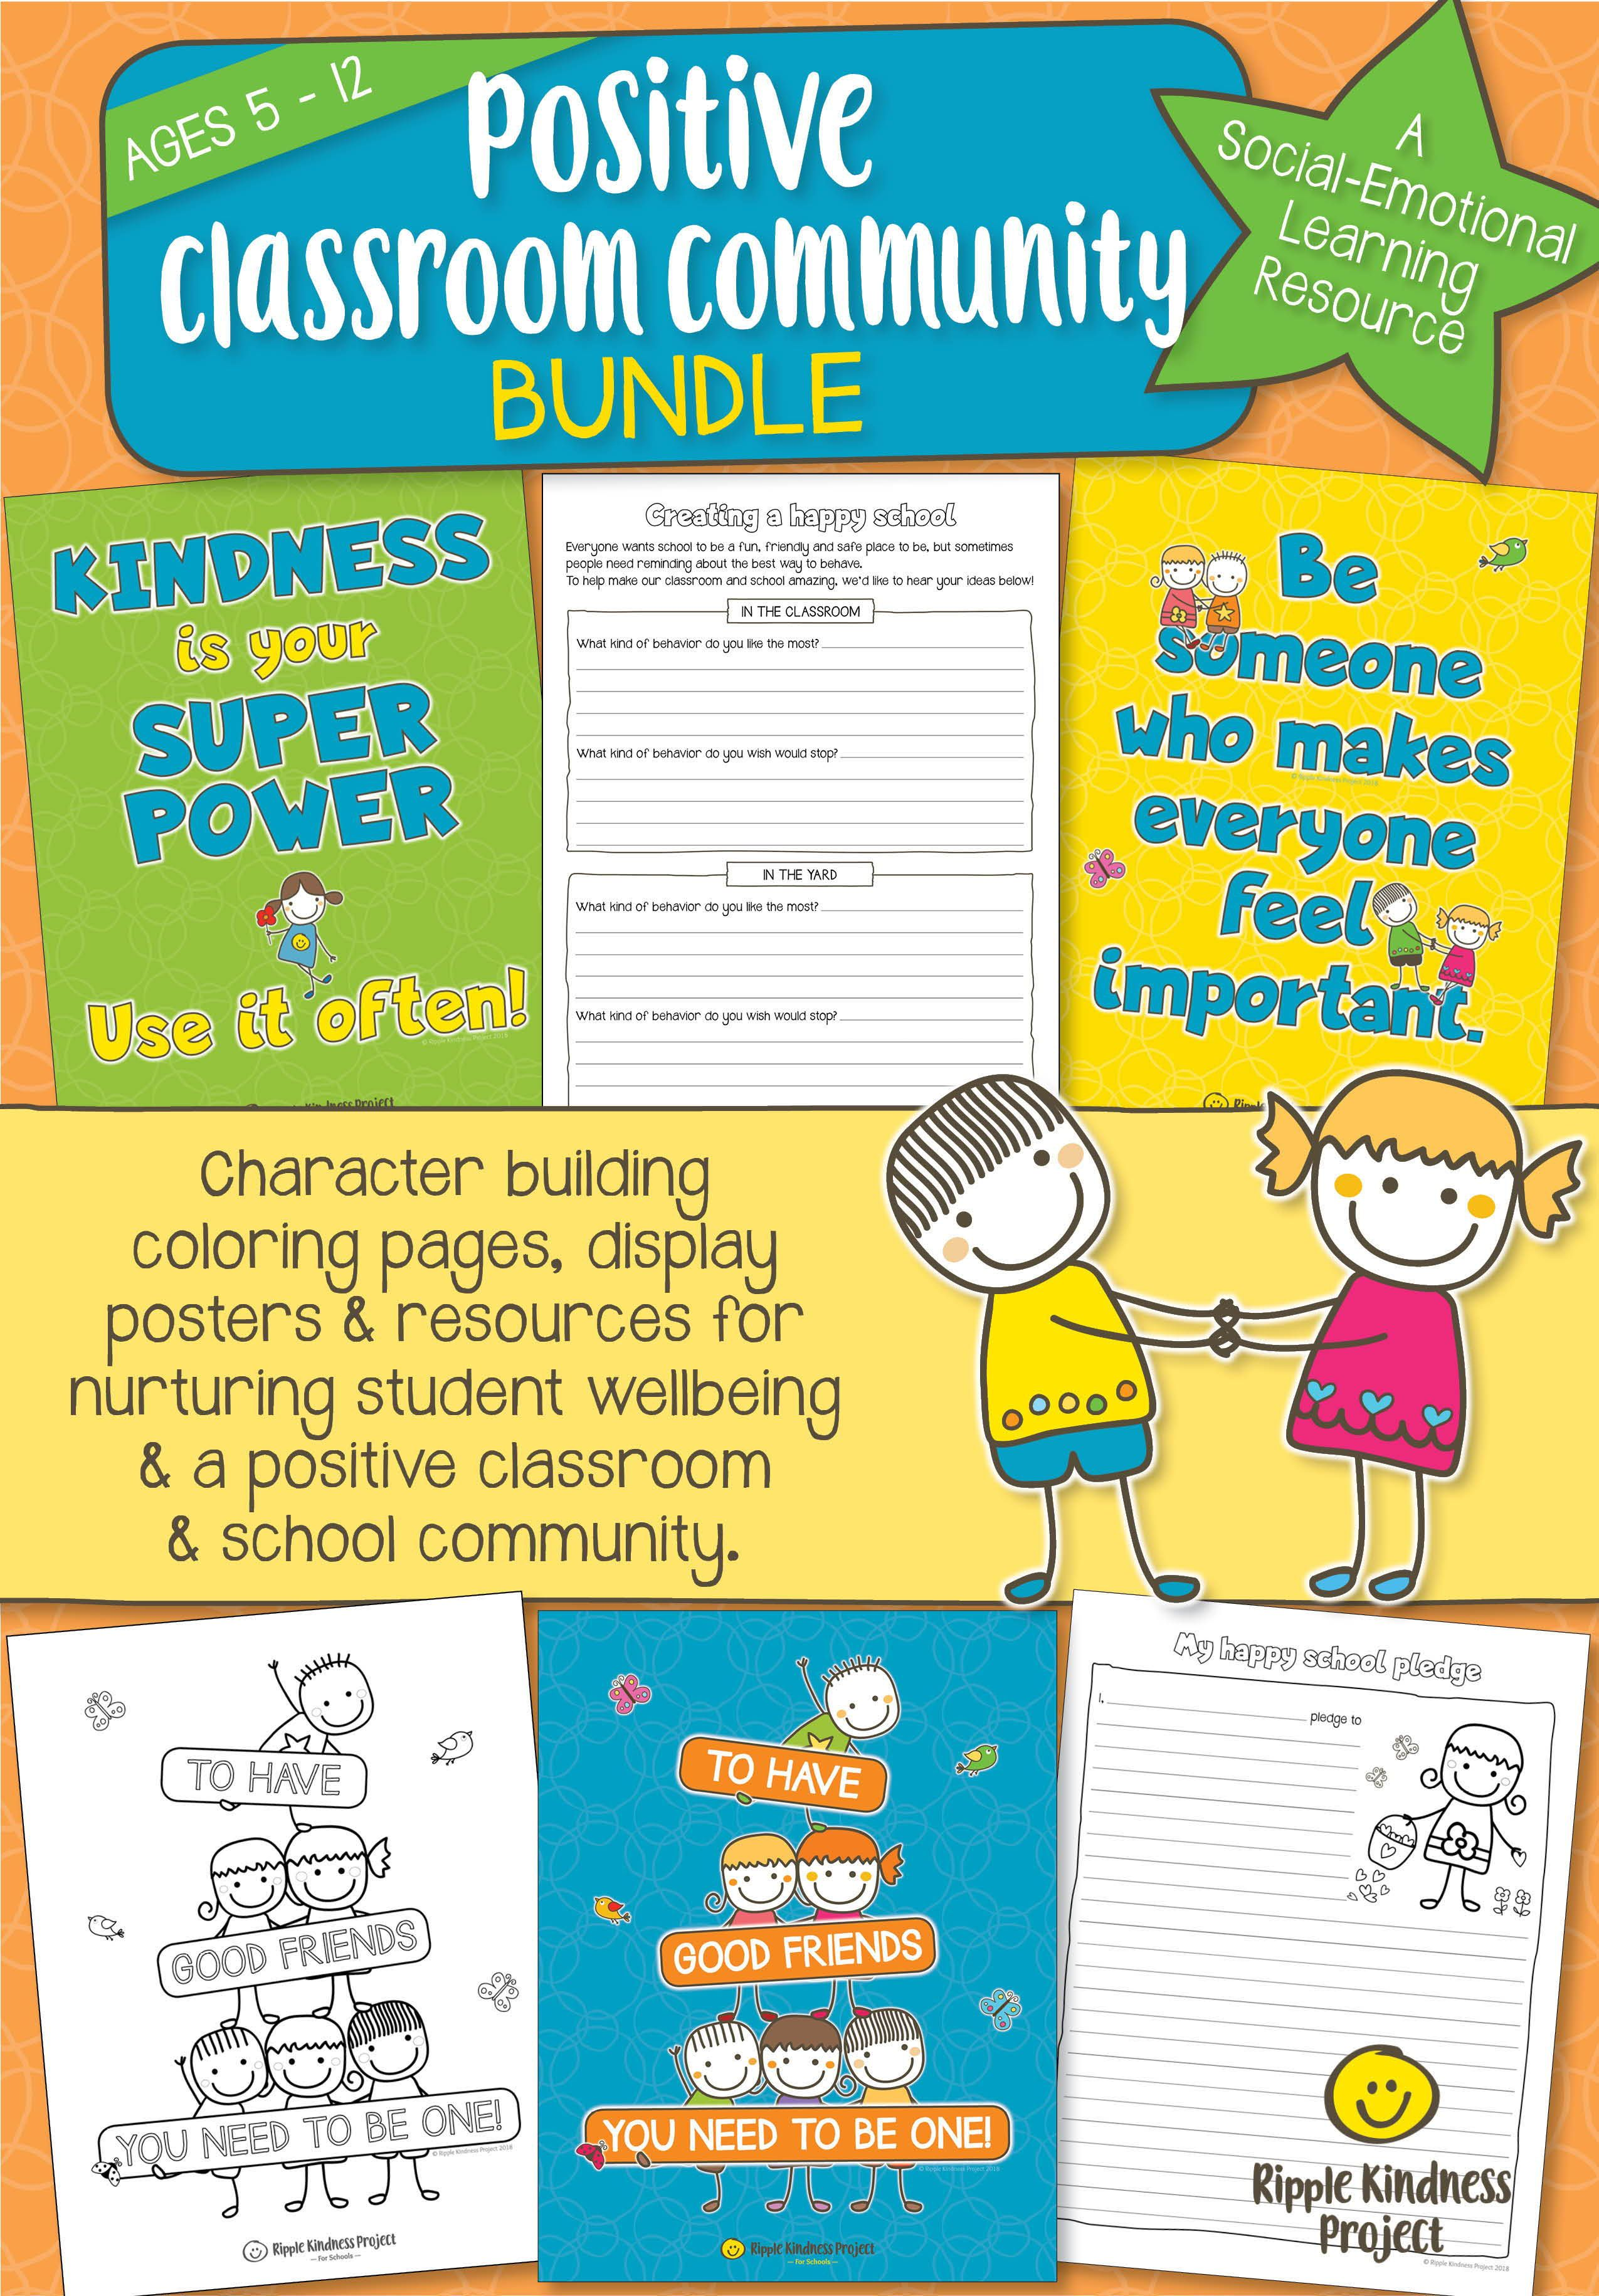 Kindness Curriculum Shown To Improve >> Inspire A Positive Caring Classroom Culture With This